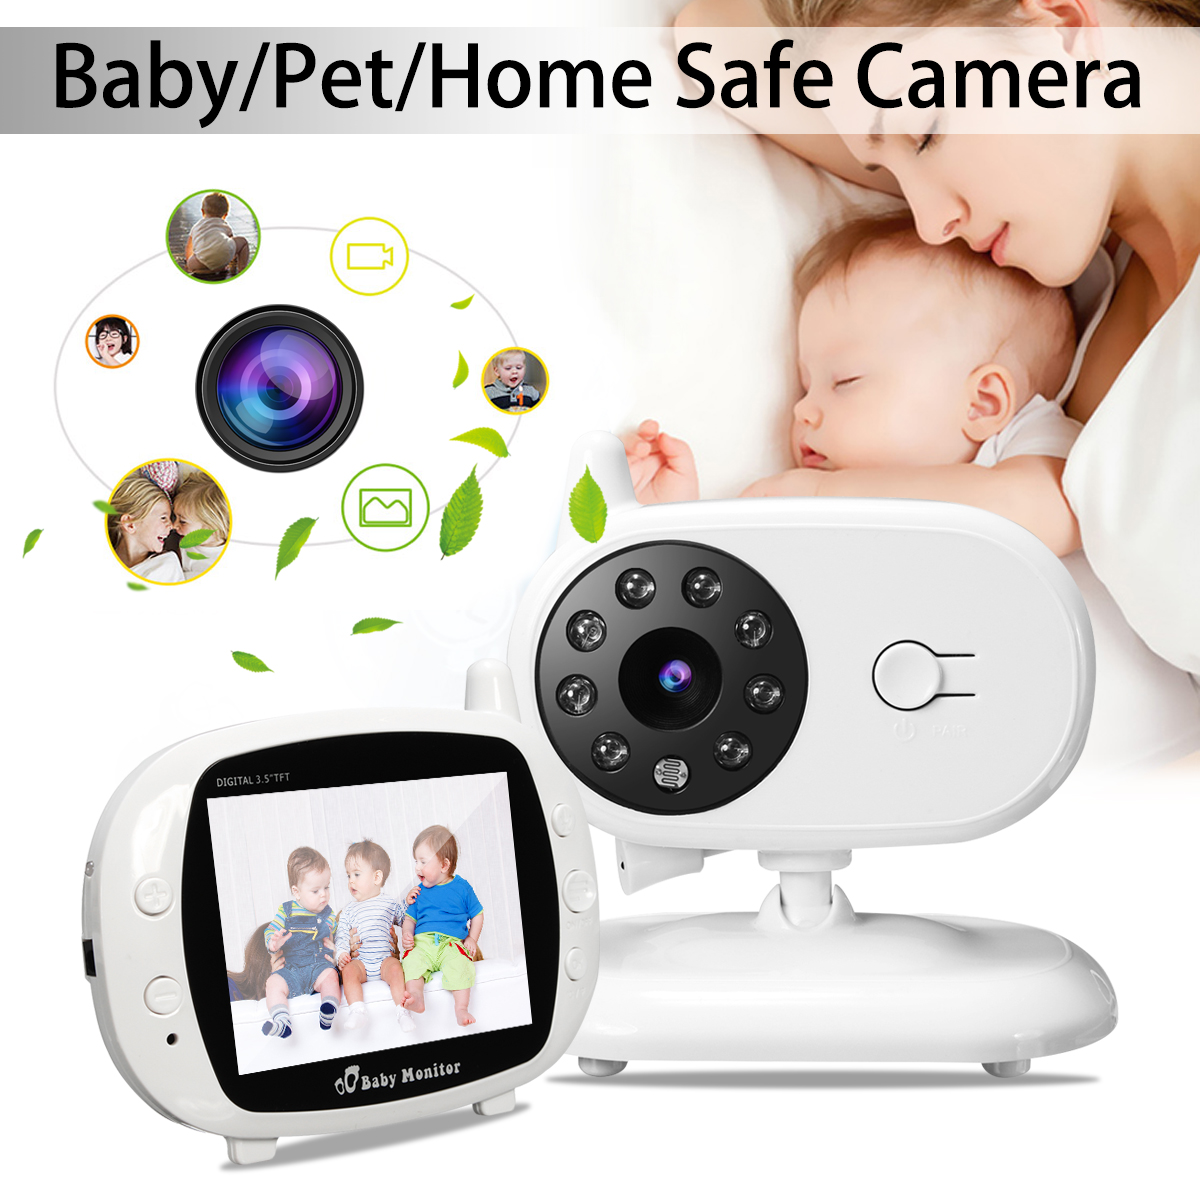 Safurance 2.4G Wireless Digital 3.5 LCD Baby Monitor Camera Audio Talk Video Night Vision High Resolution Home Security